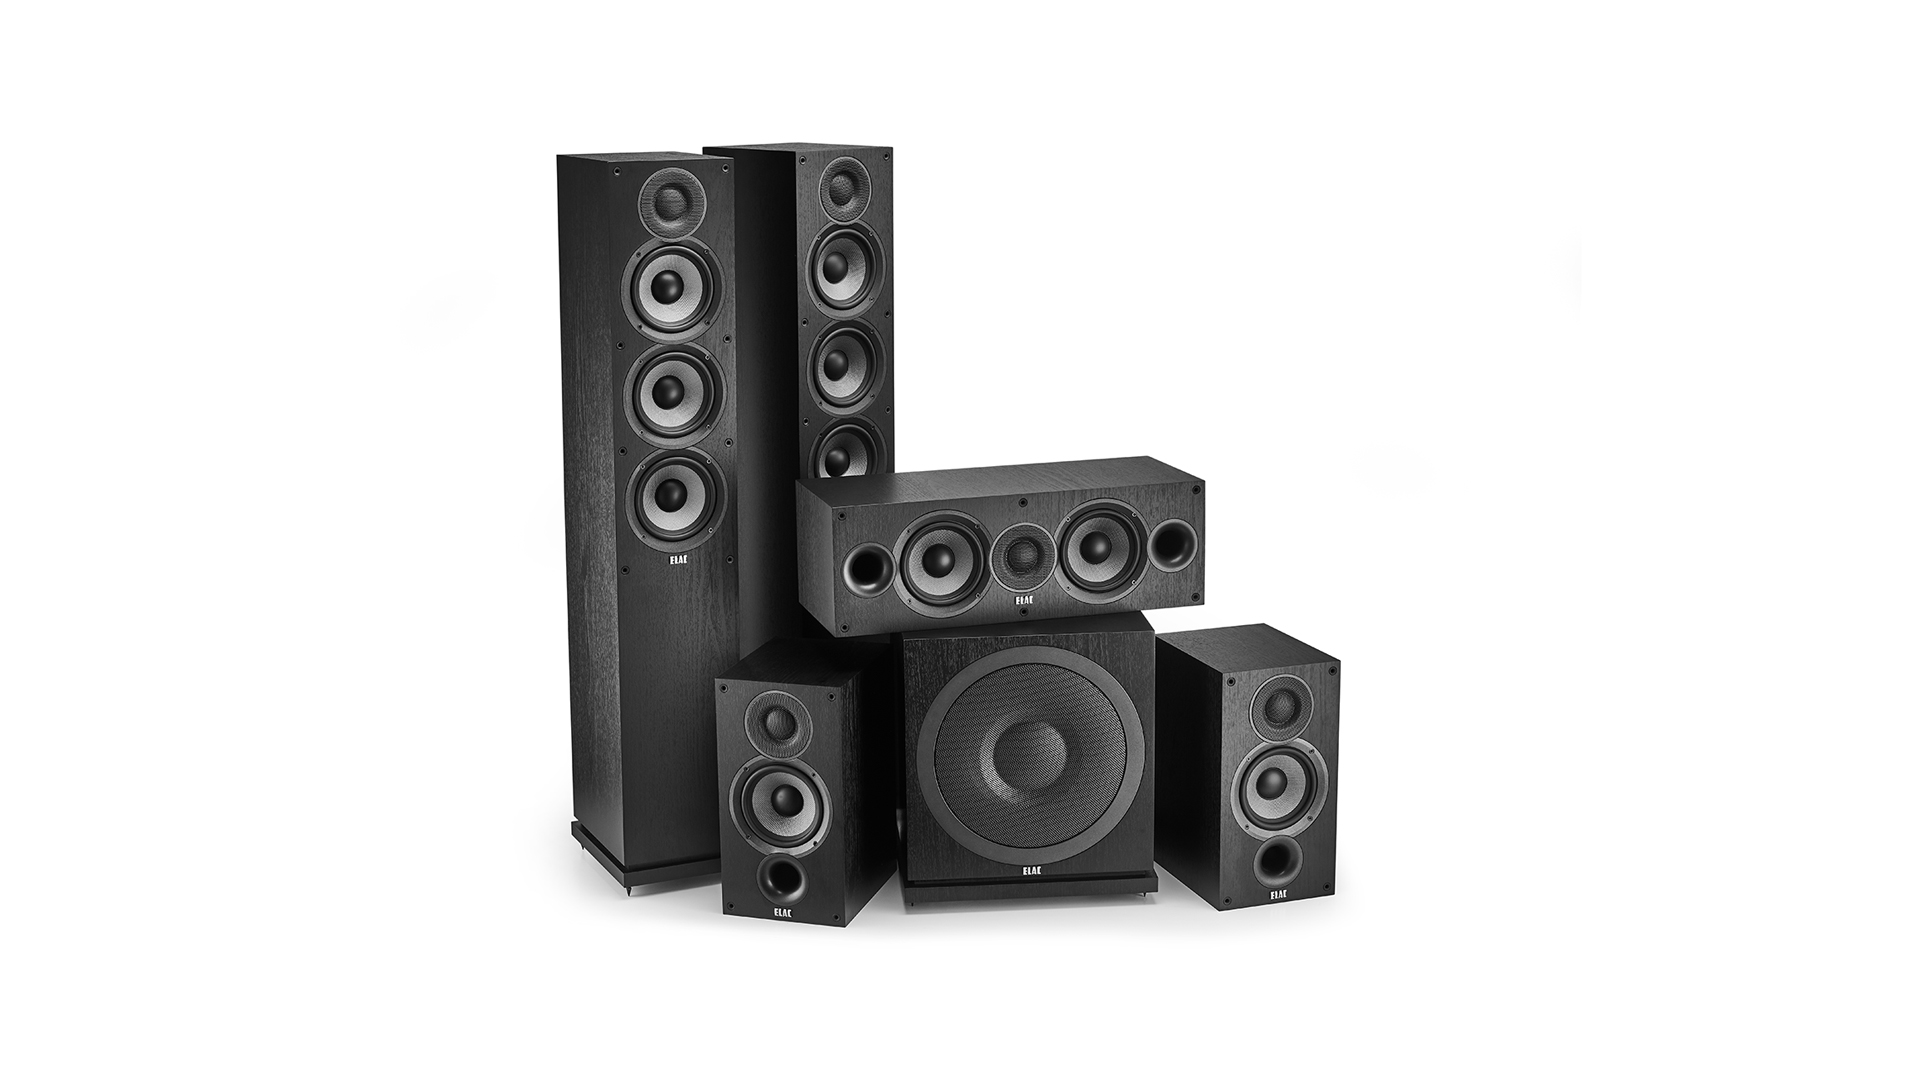 Elac Debut 2 0 5 1 Home Theatre System review | What Hi-Fi?